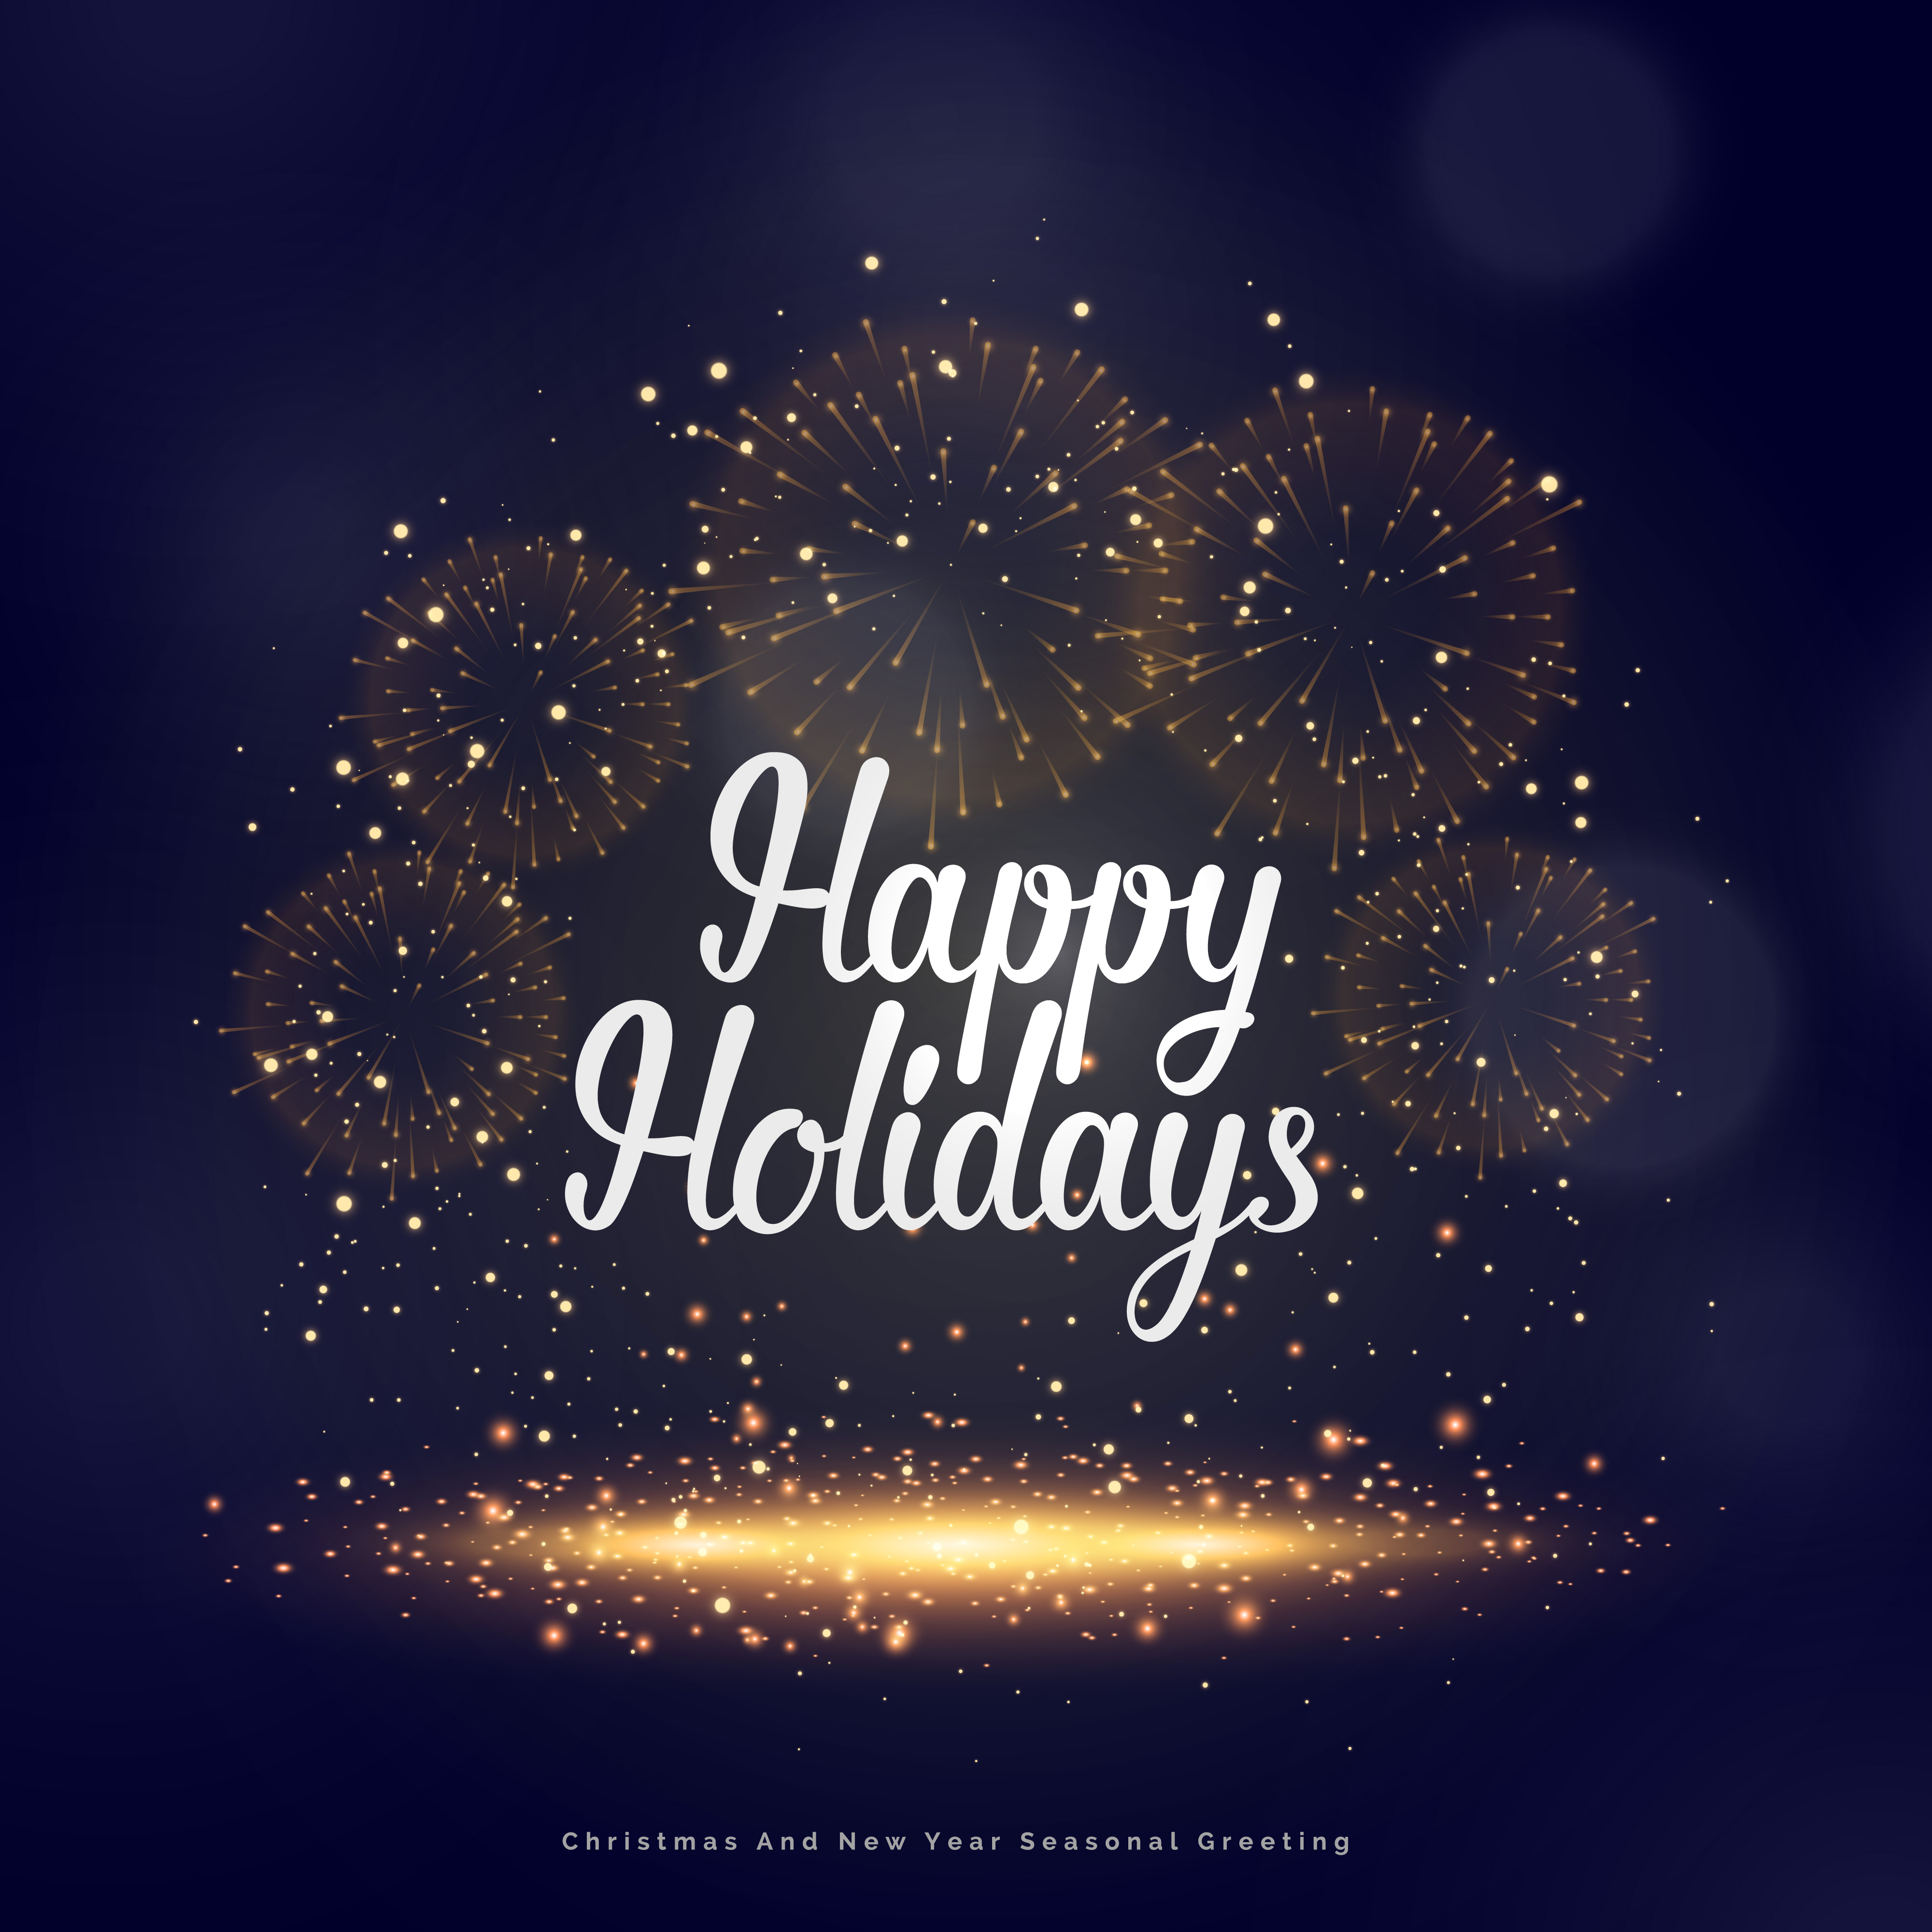 Happy holidays free vector art 19477 free downloads m4hsunfo